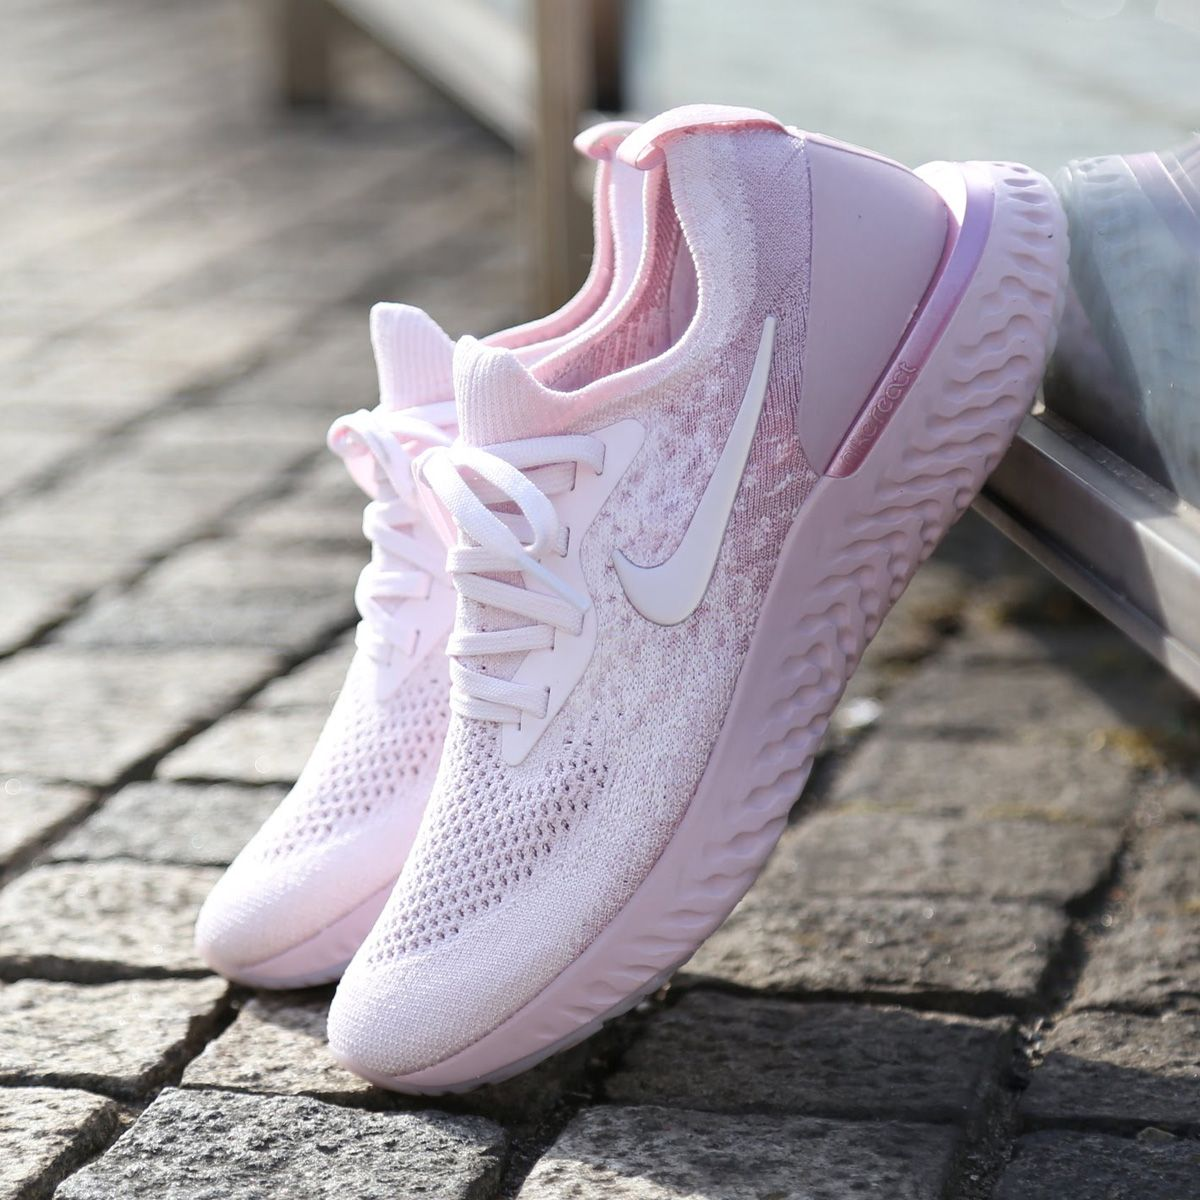 339c433ac73c The Nike Epic React Flyknit Women s Running Shoe in pink against wall.